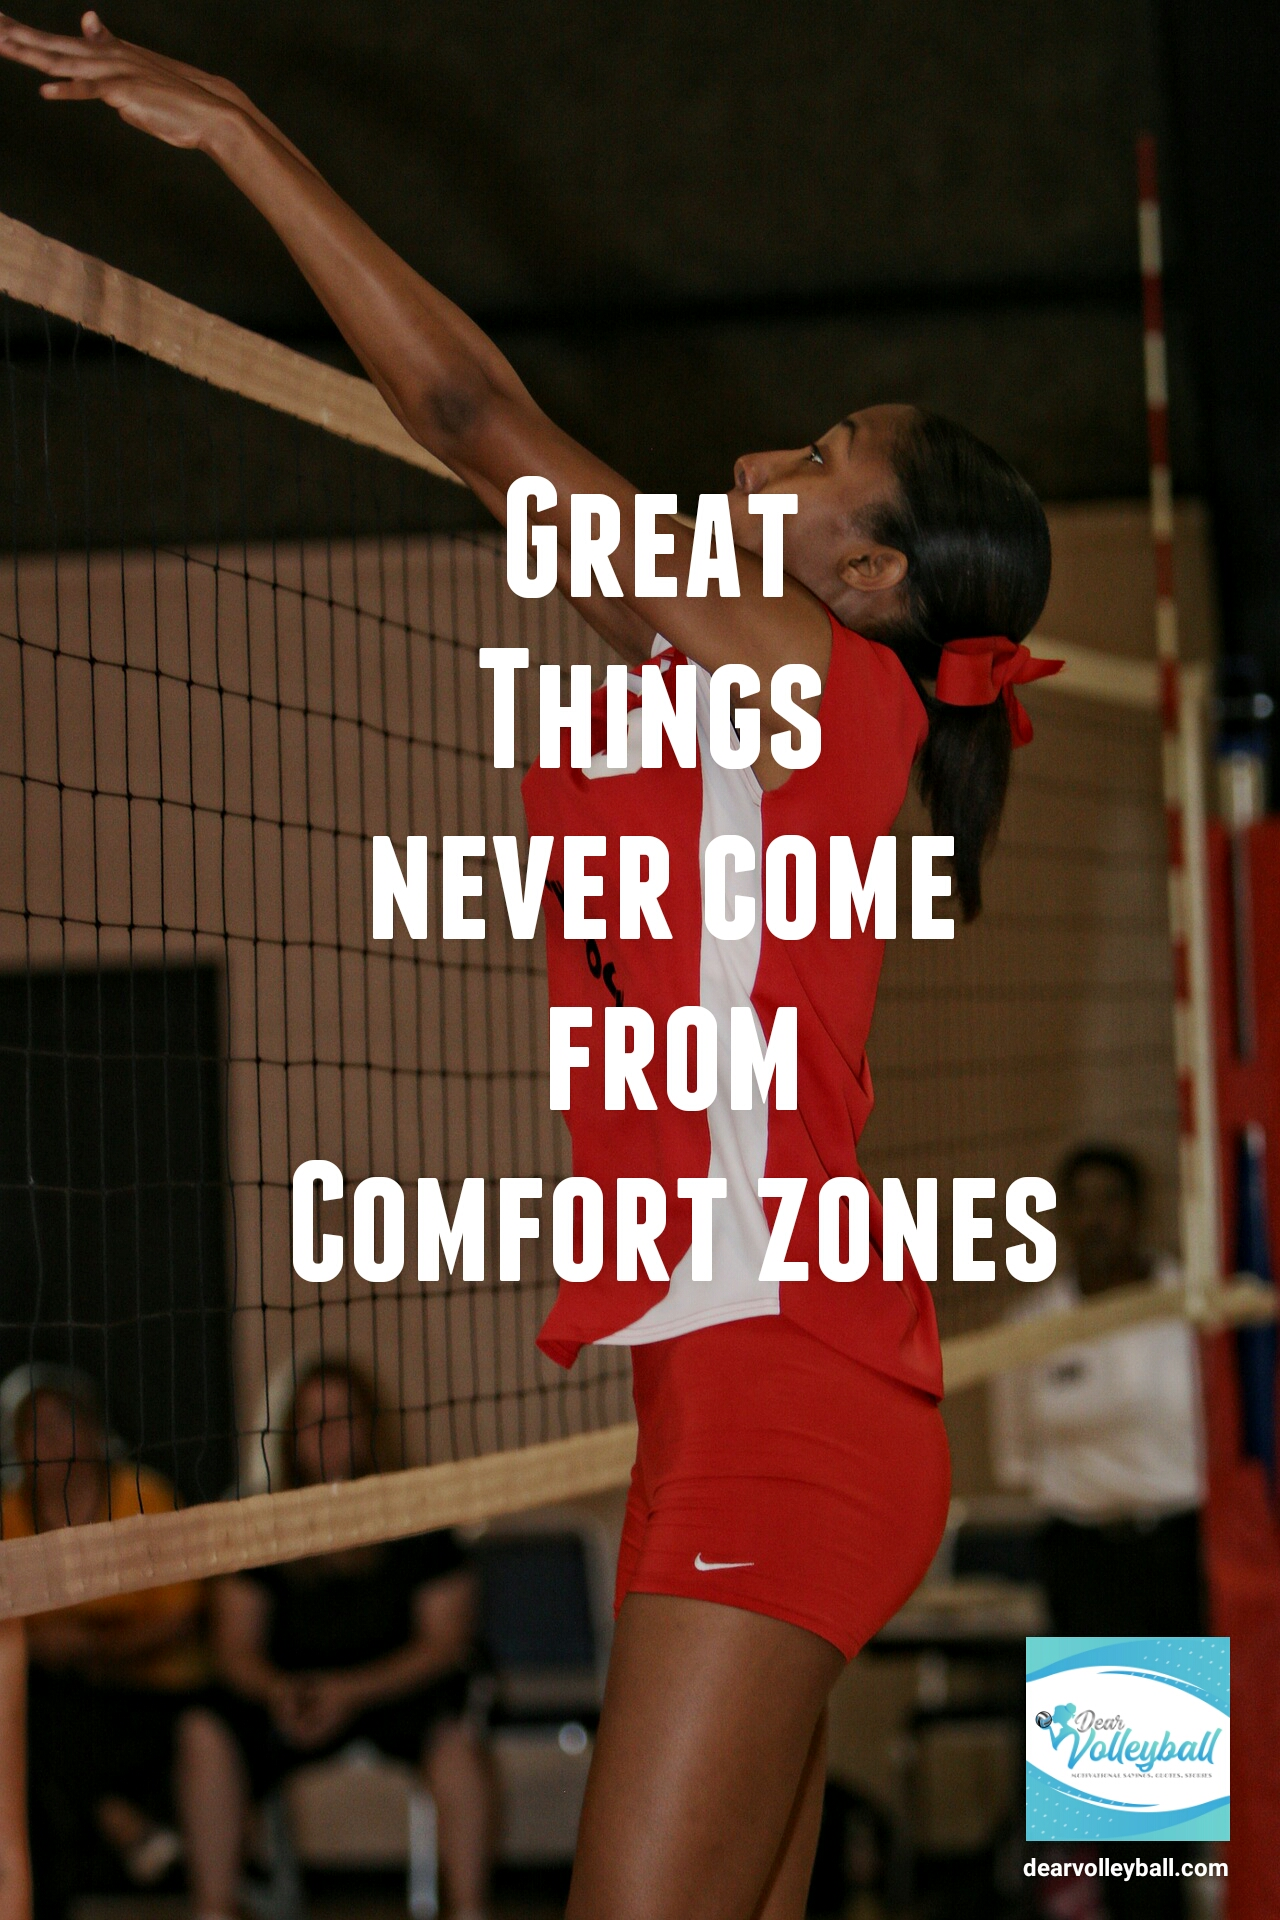 Great things never come from comfort zones and 54 short inspirational quotes on DearVolleyball.com